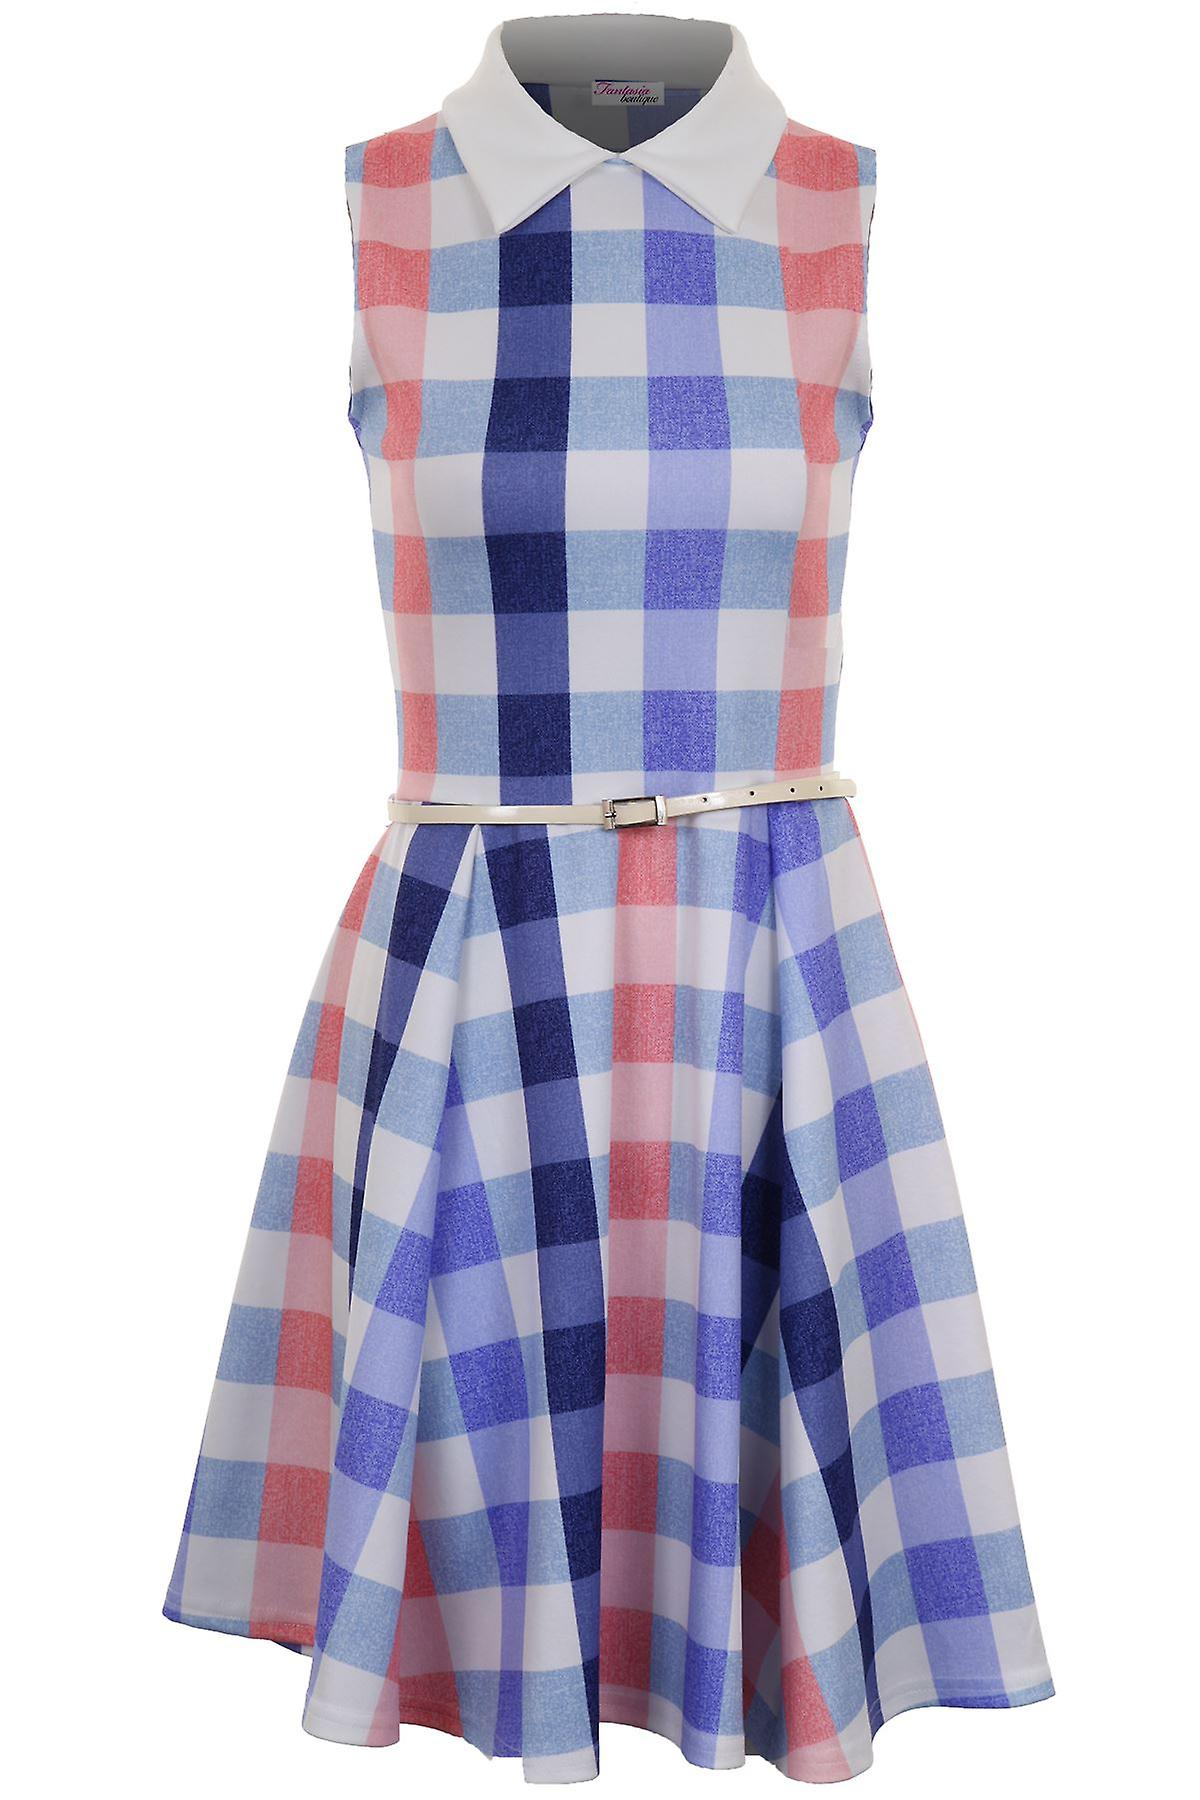 Ladies Sleeveless Peter Pan Collar Belted Chequered Women's Flare Party Dress